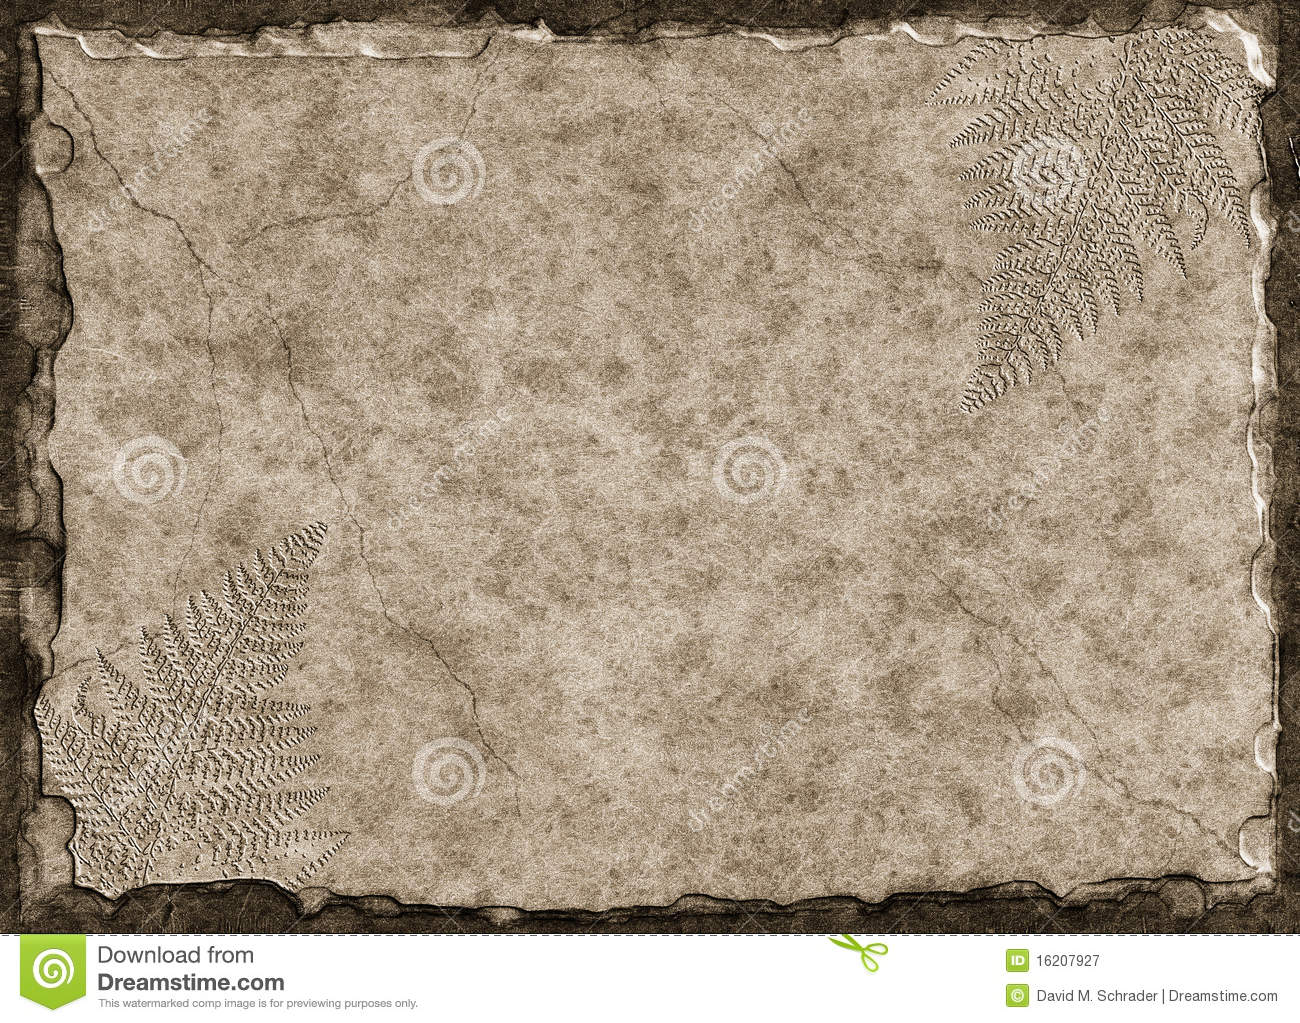 Stone Tablet Clip Art : Fern fossils royalty free stock photography image